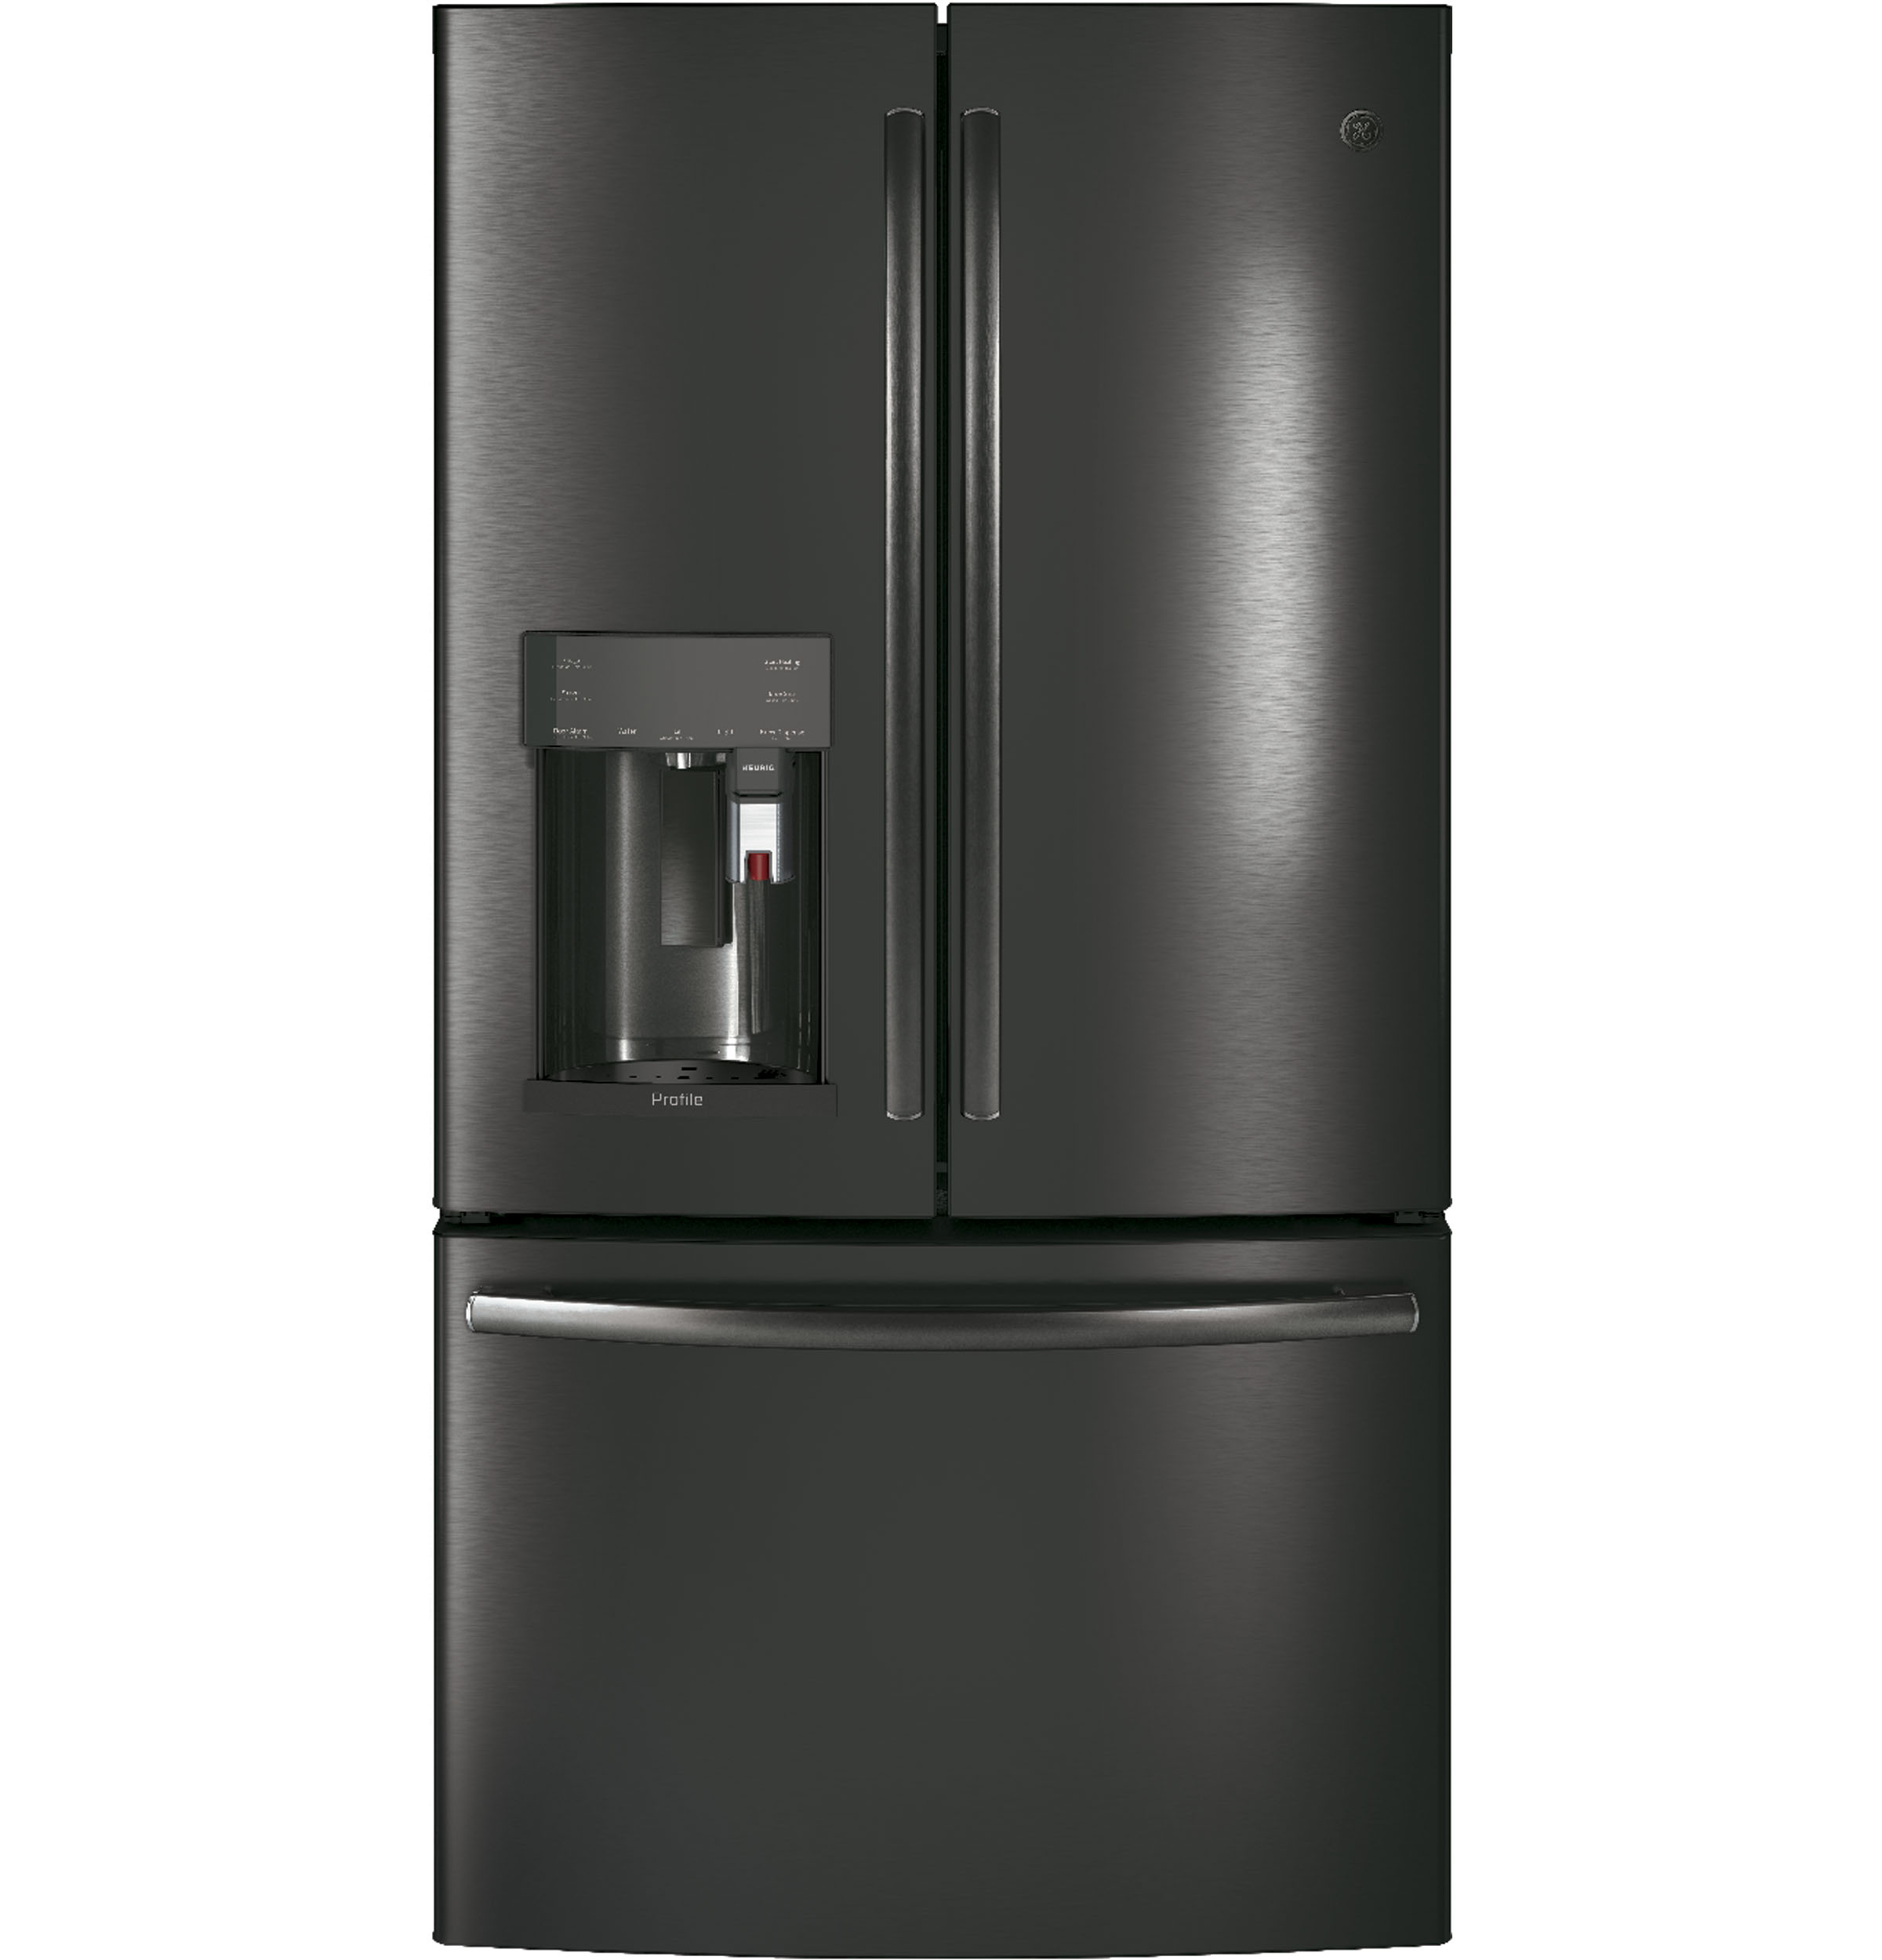 GE Profile GE Profile™ Series ENERGY STAR® 22.2 Cu. Ft. Counter-Depth French-Door Refrigerator with Keurig® K-Cup® Brewing System